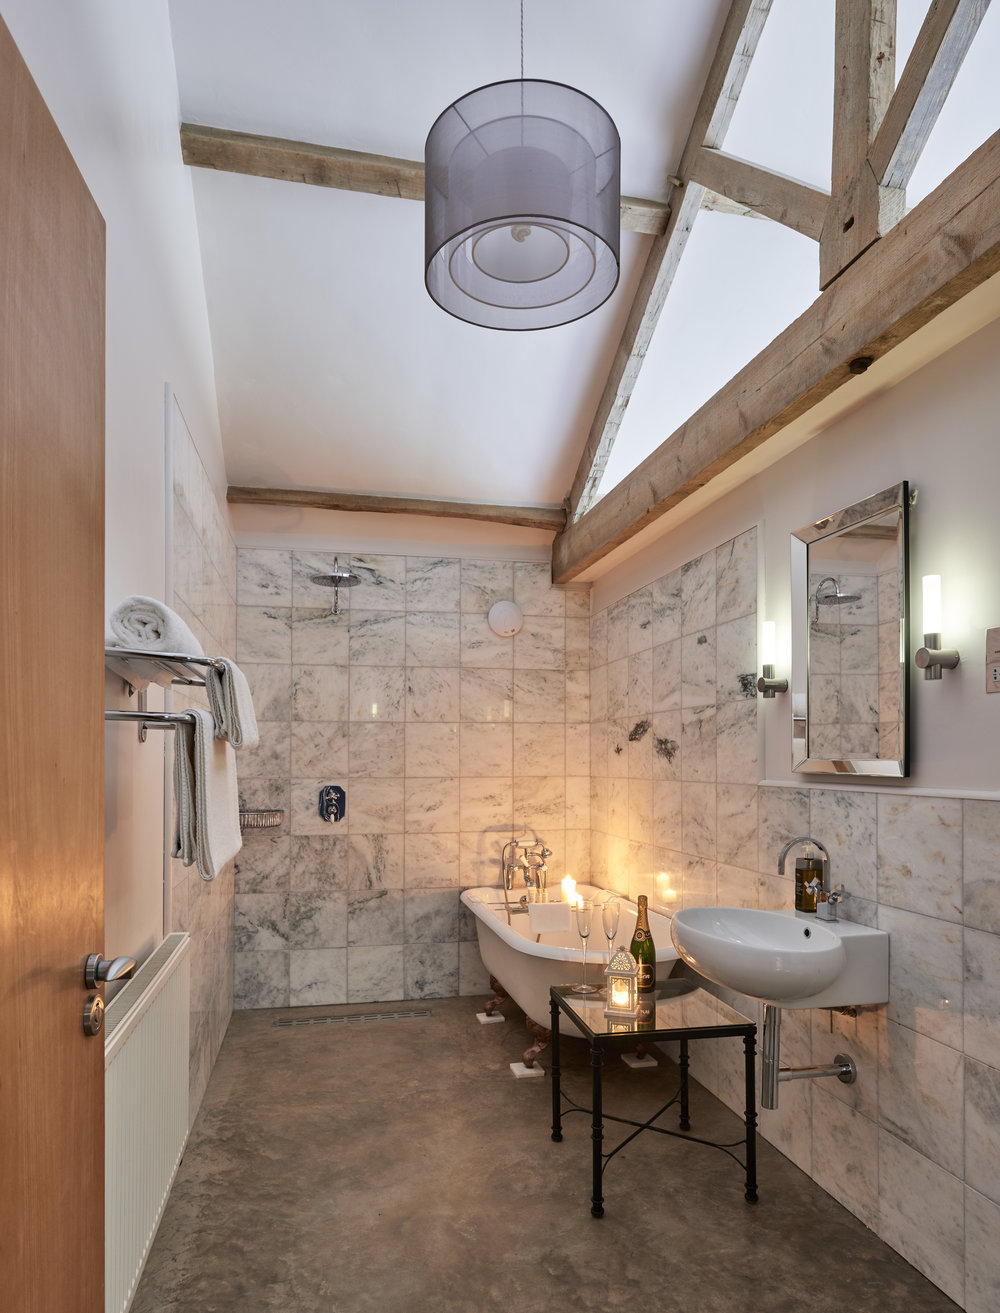 Folly Gill Bathroom: Marble tiles, roll top bath and a walk in rain shower